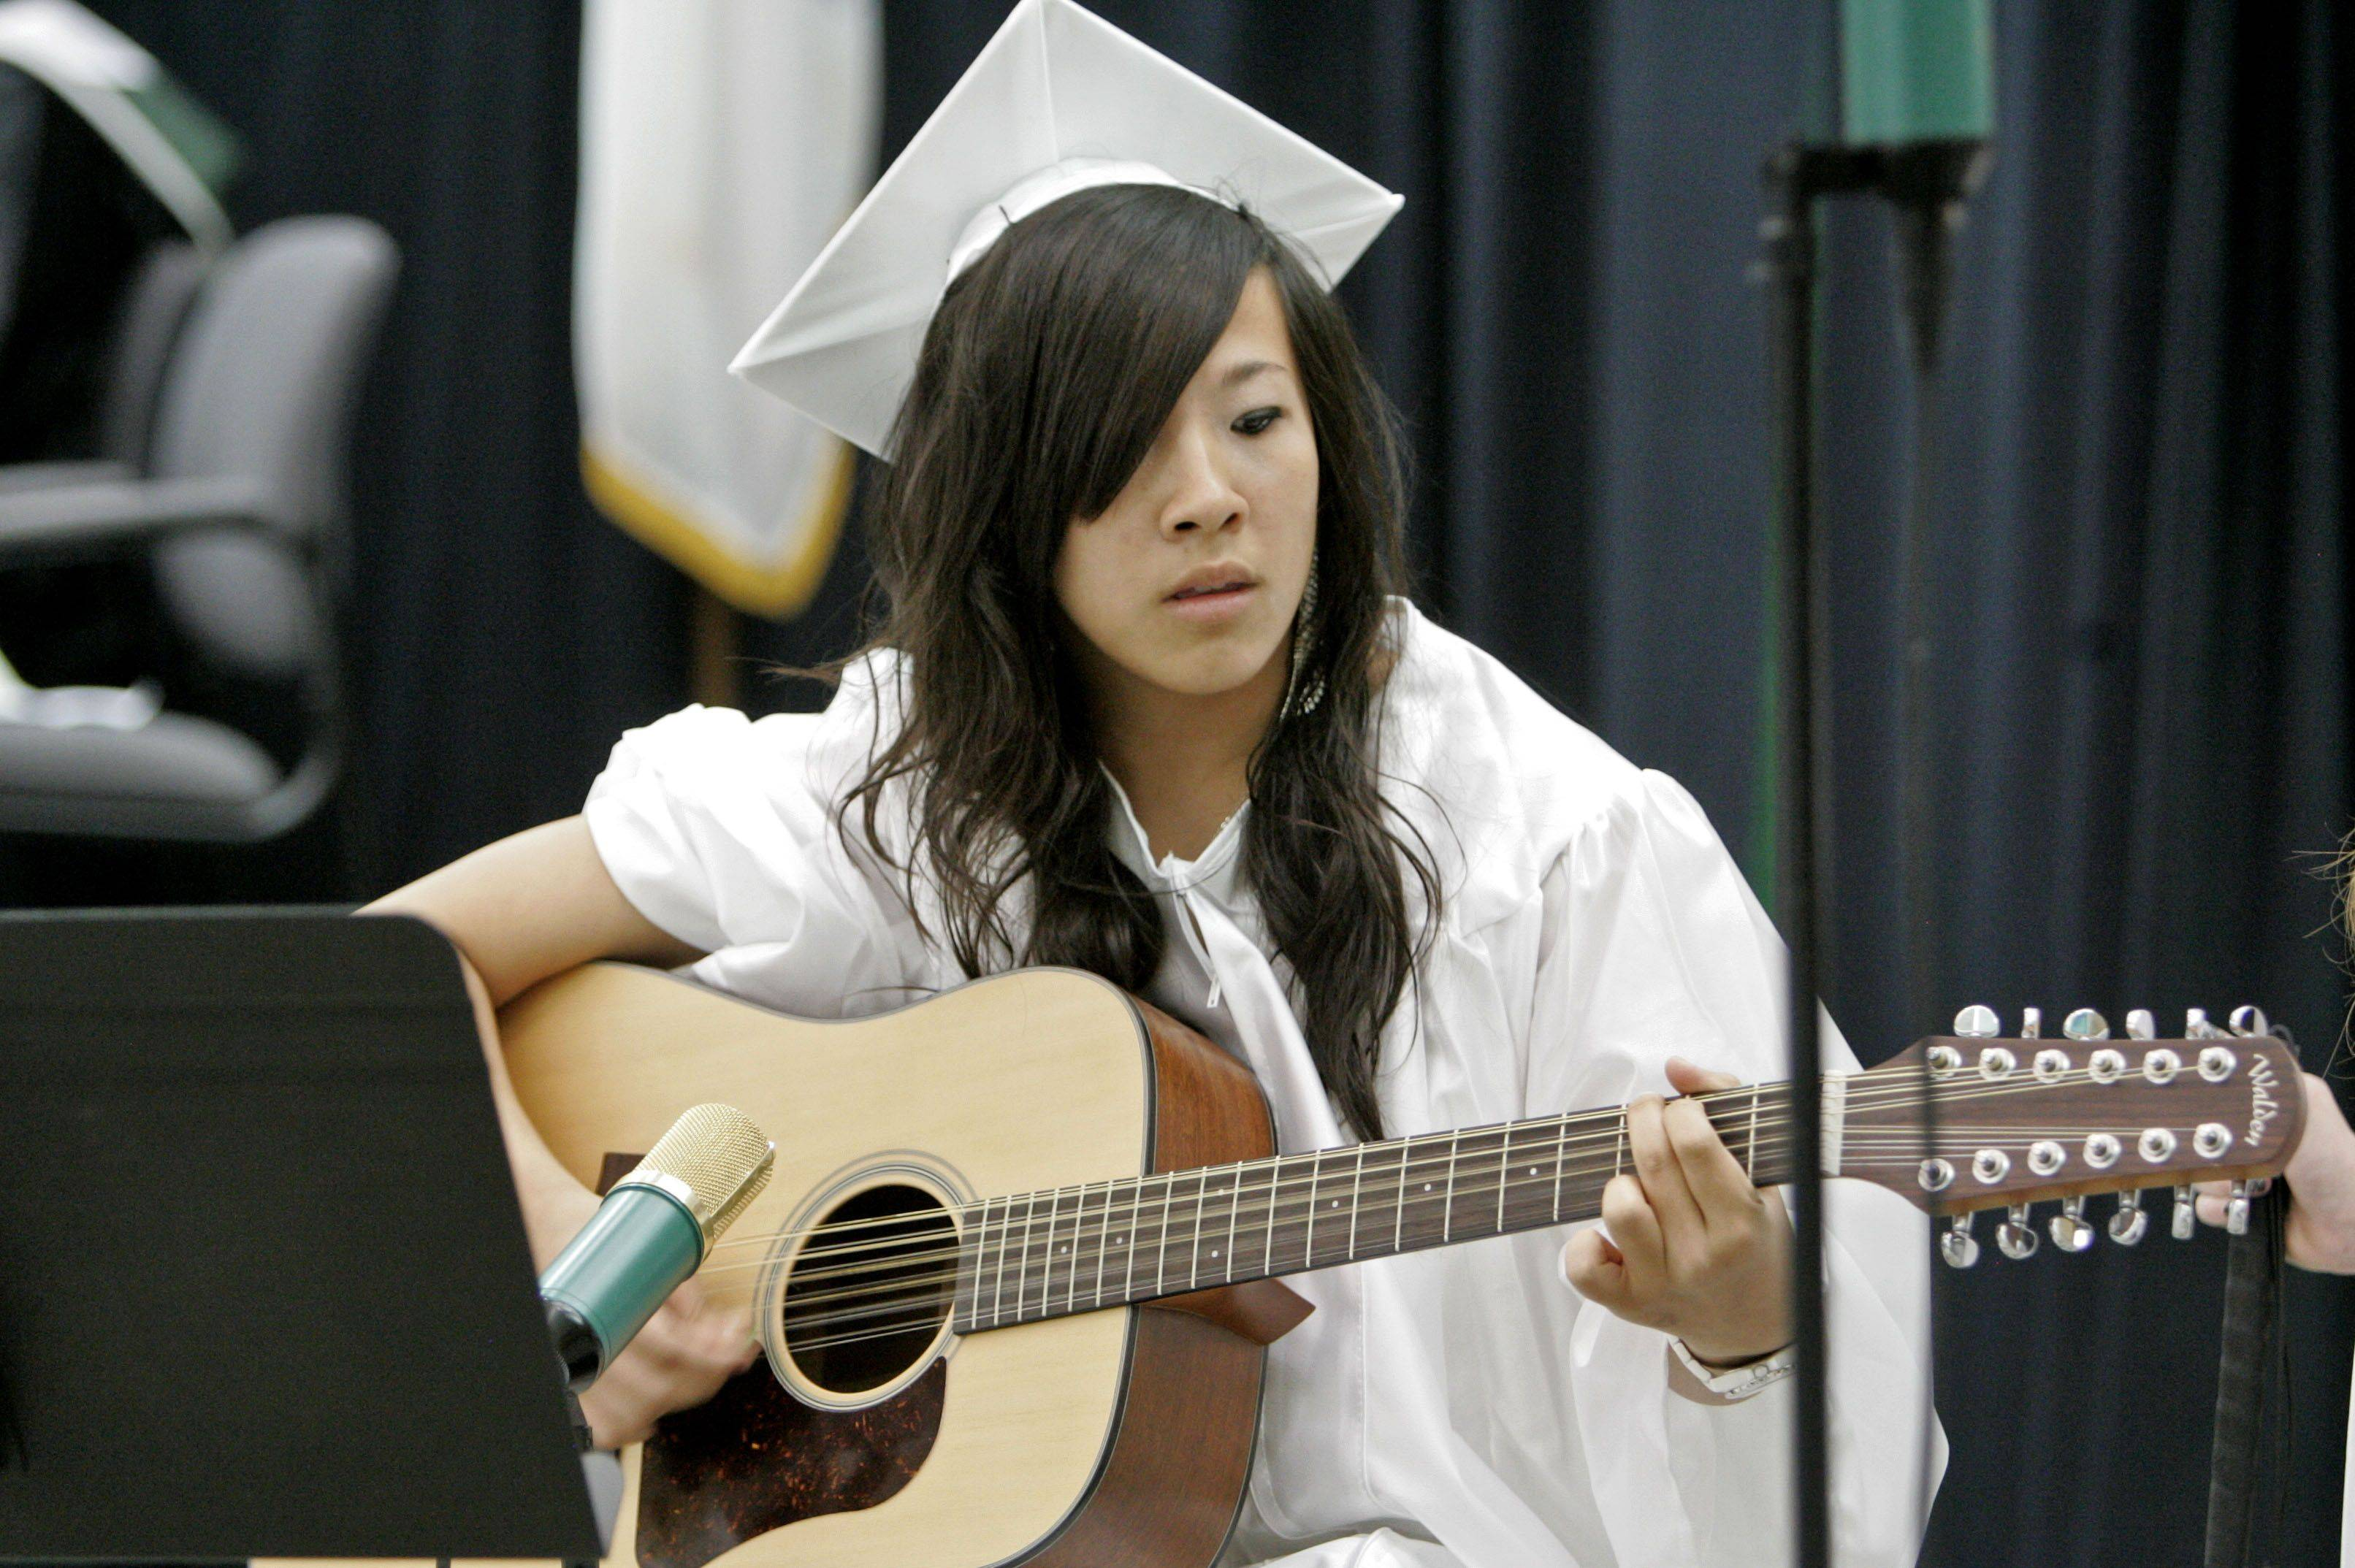 Images from the Grayslake Central High School graduation Sunday, May 22.